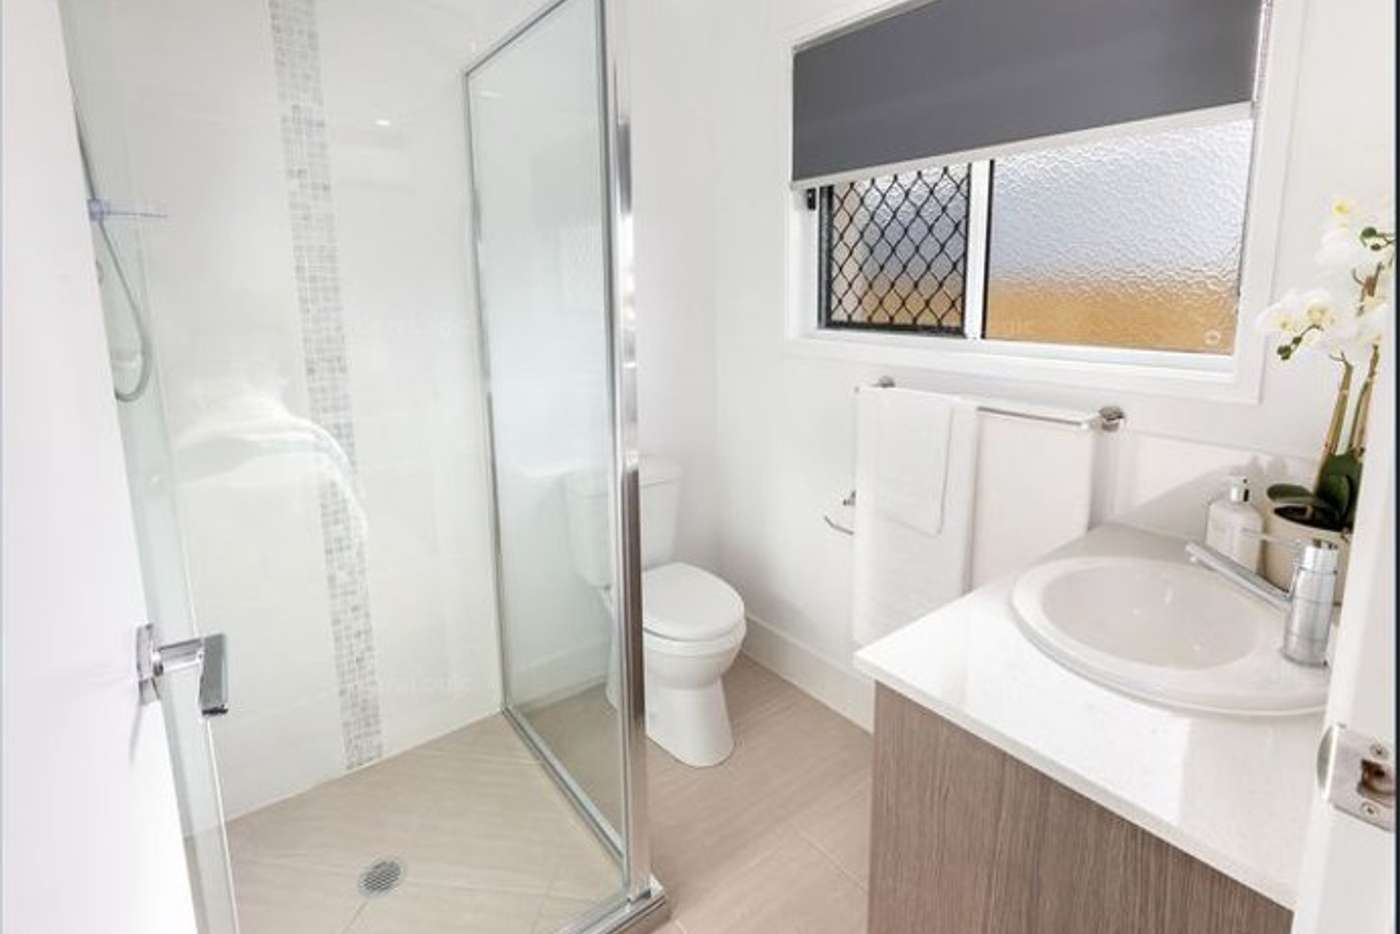 Sixth view of Homely semiDetached listing, 2/18 Proteous Street, Burpengary QLD 4505